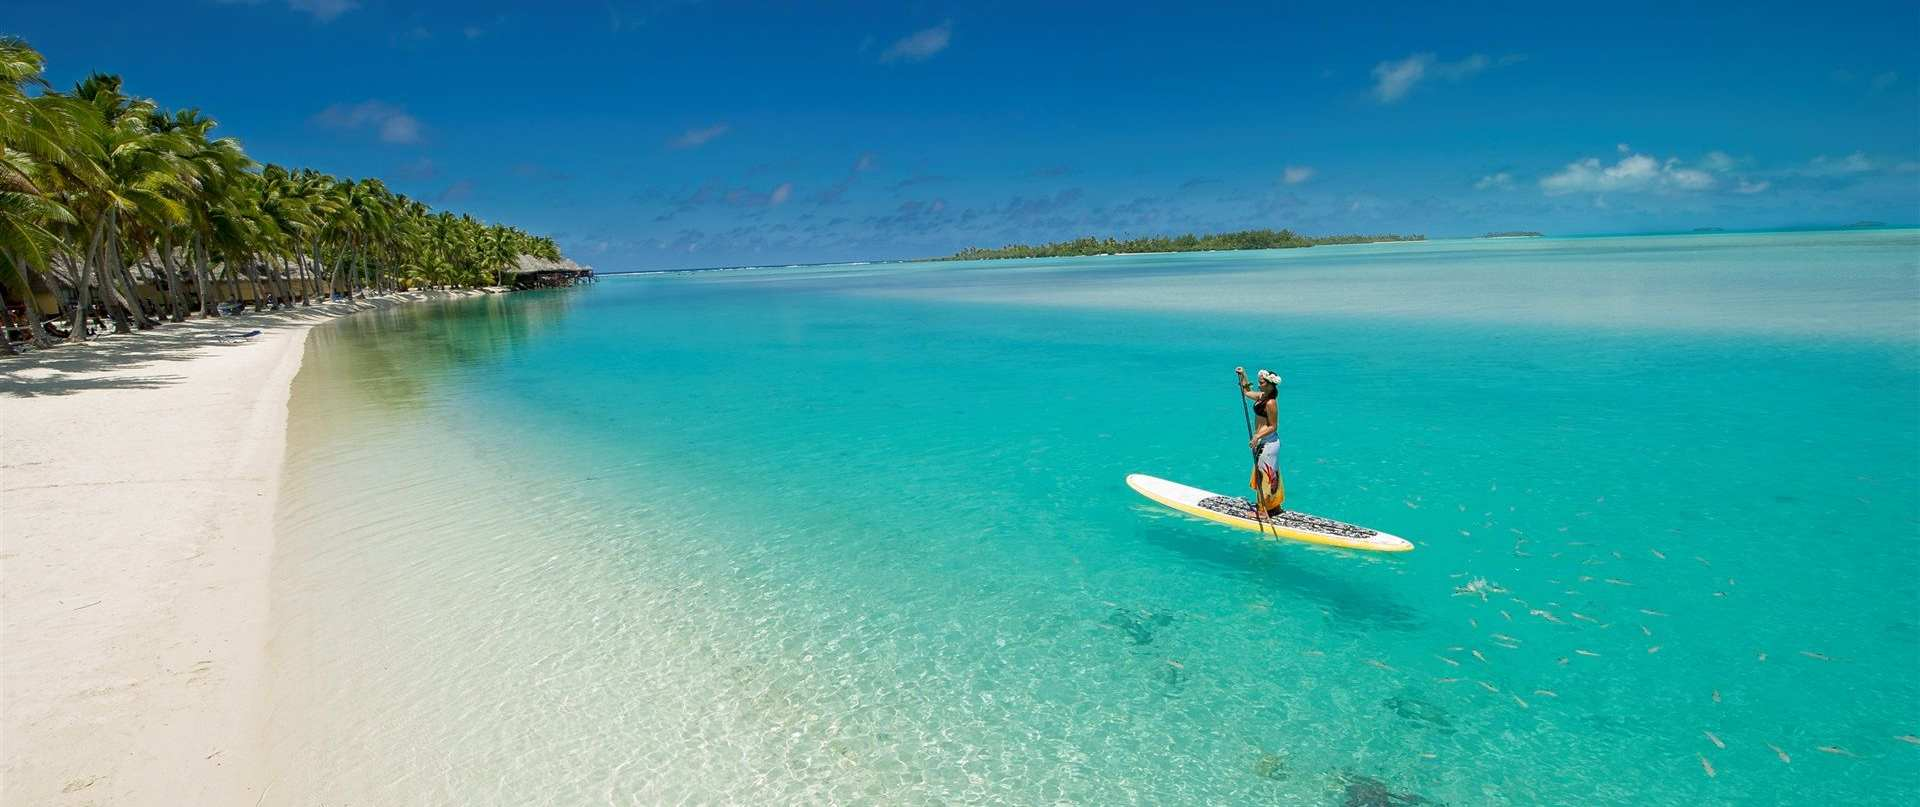 10 ideal places to start a new life. Real paradises